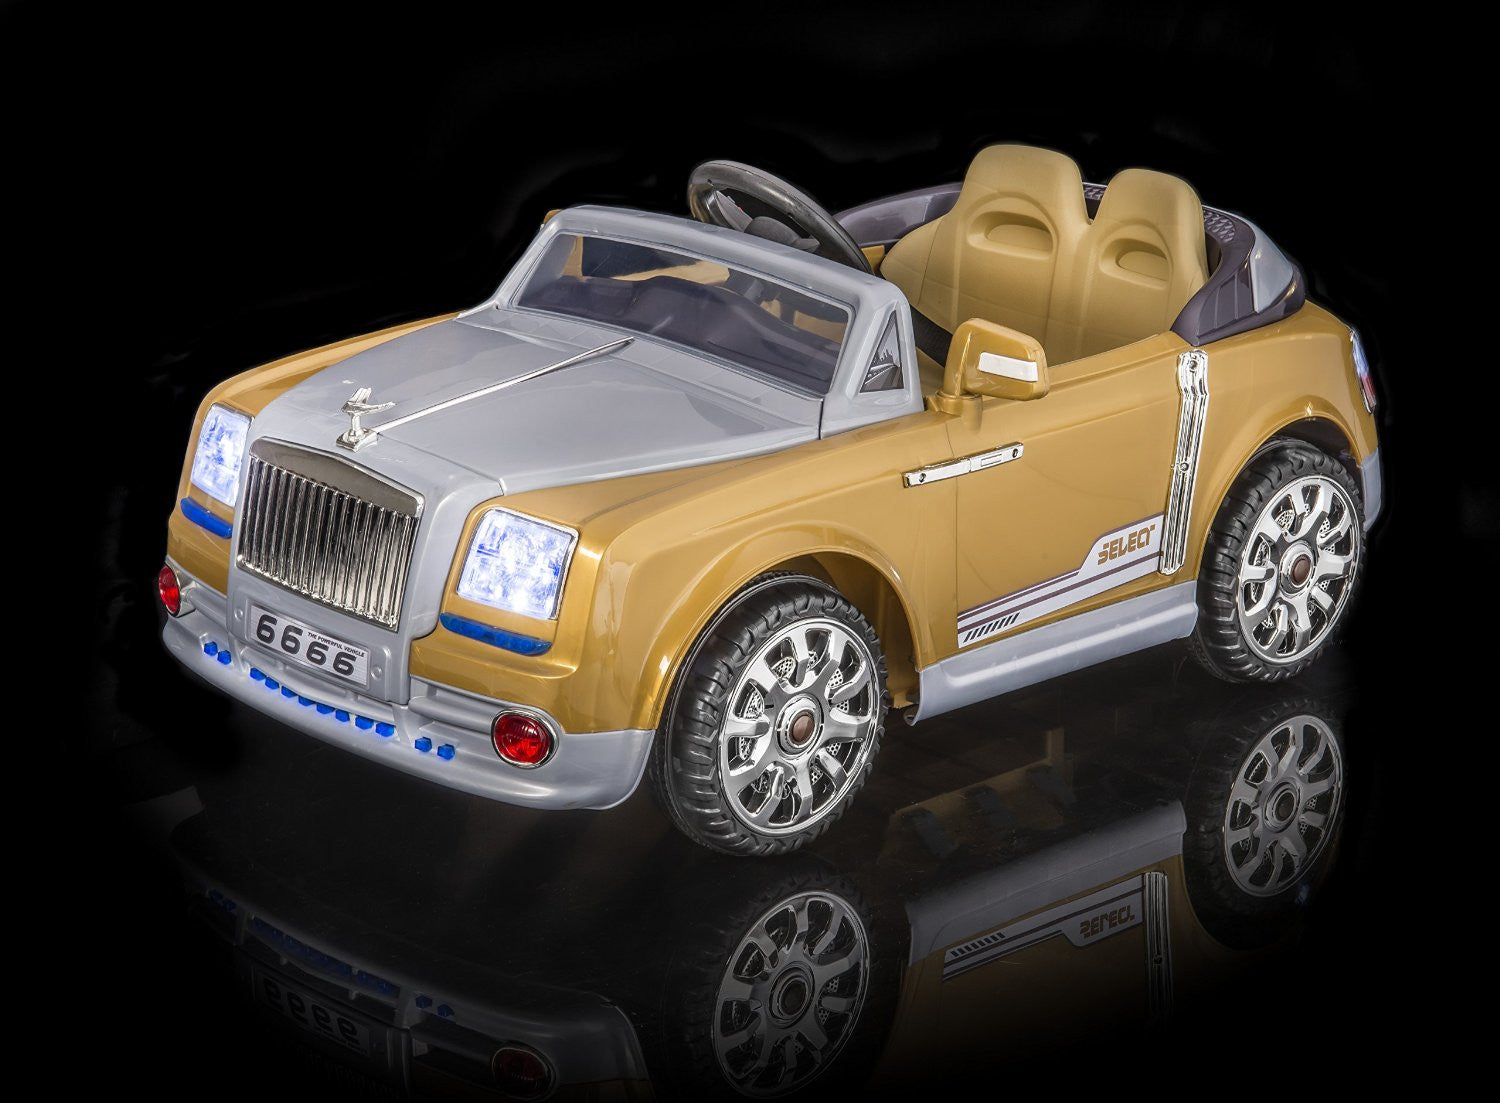 Rolls Royce Style 12V Ride On Sedan with Remote Control